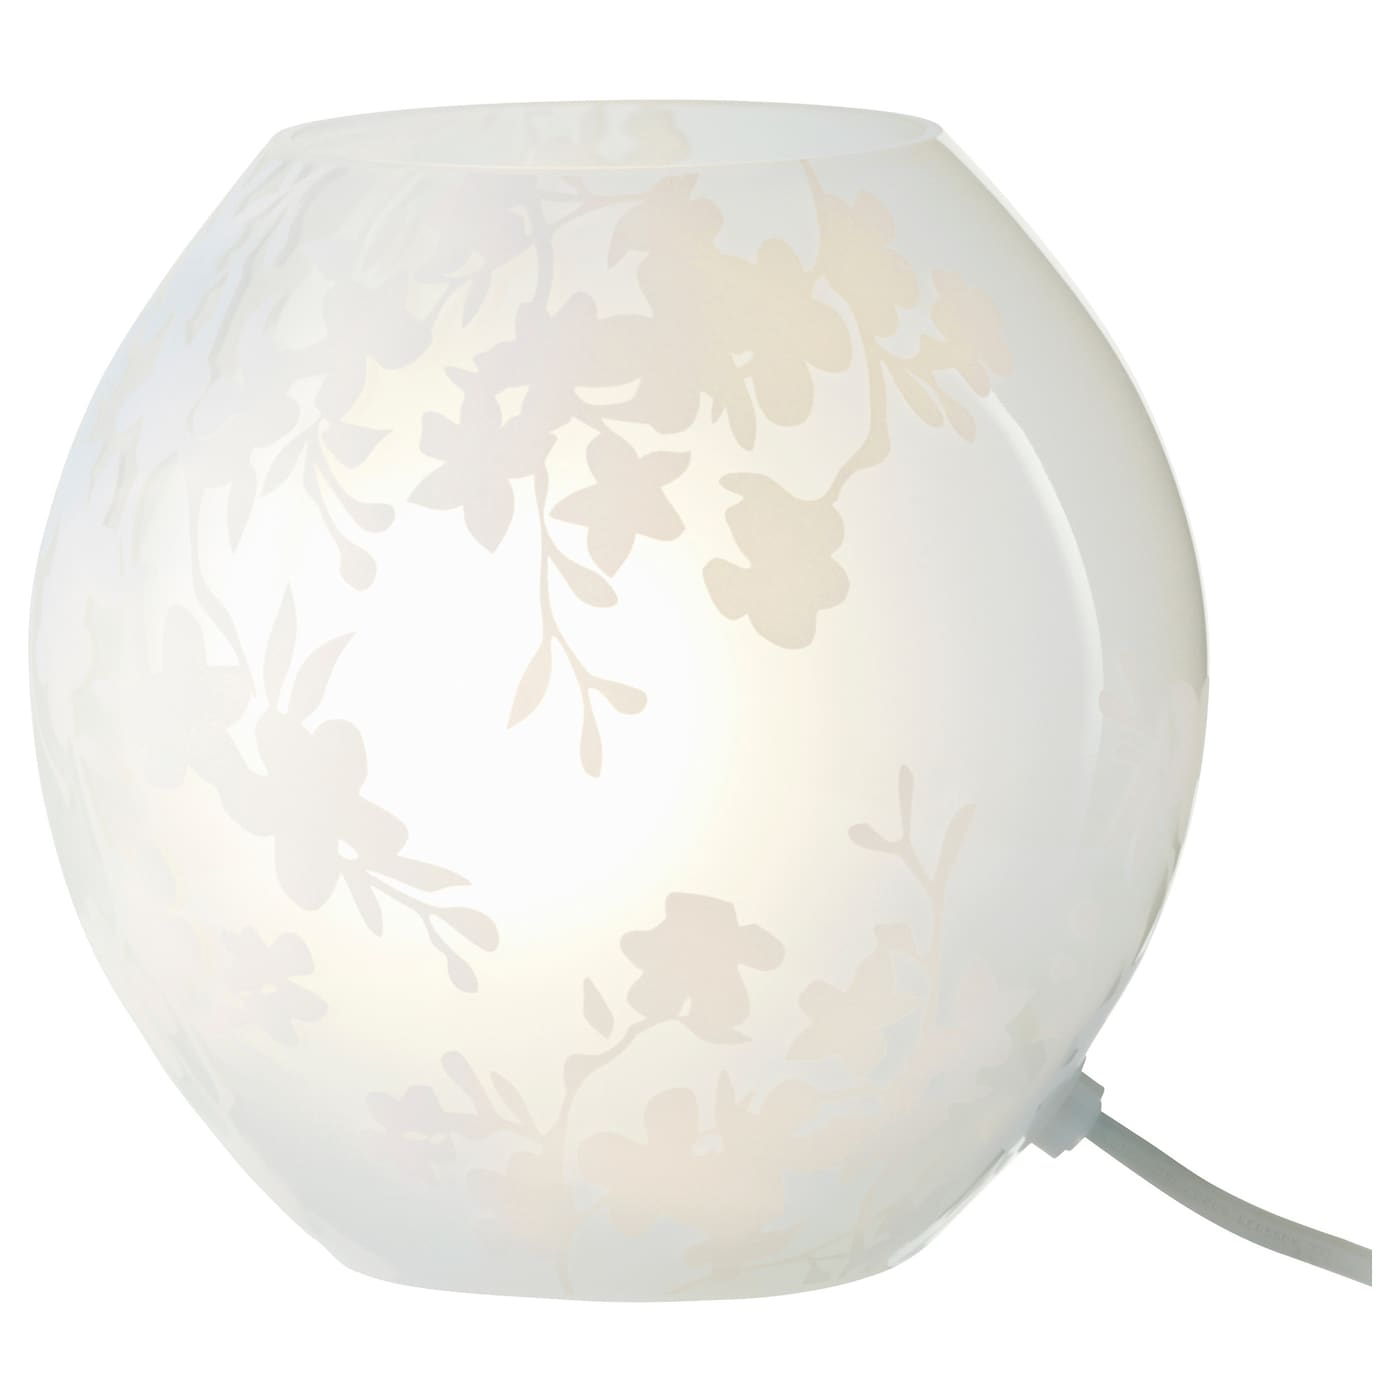 Led lighting lights at ikea ireland dublin ikea knubbig table lamp gives a soft mood light geotapseo Image collections